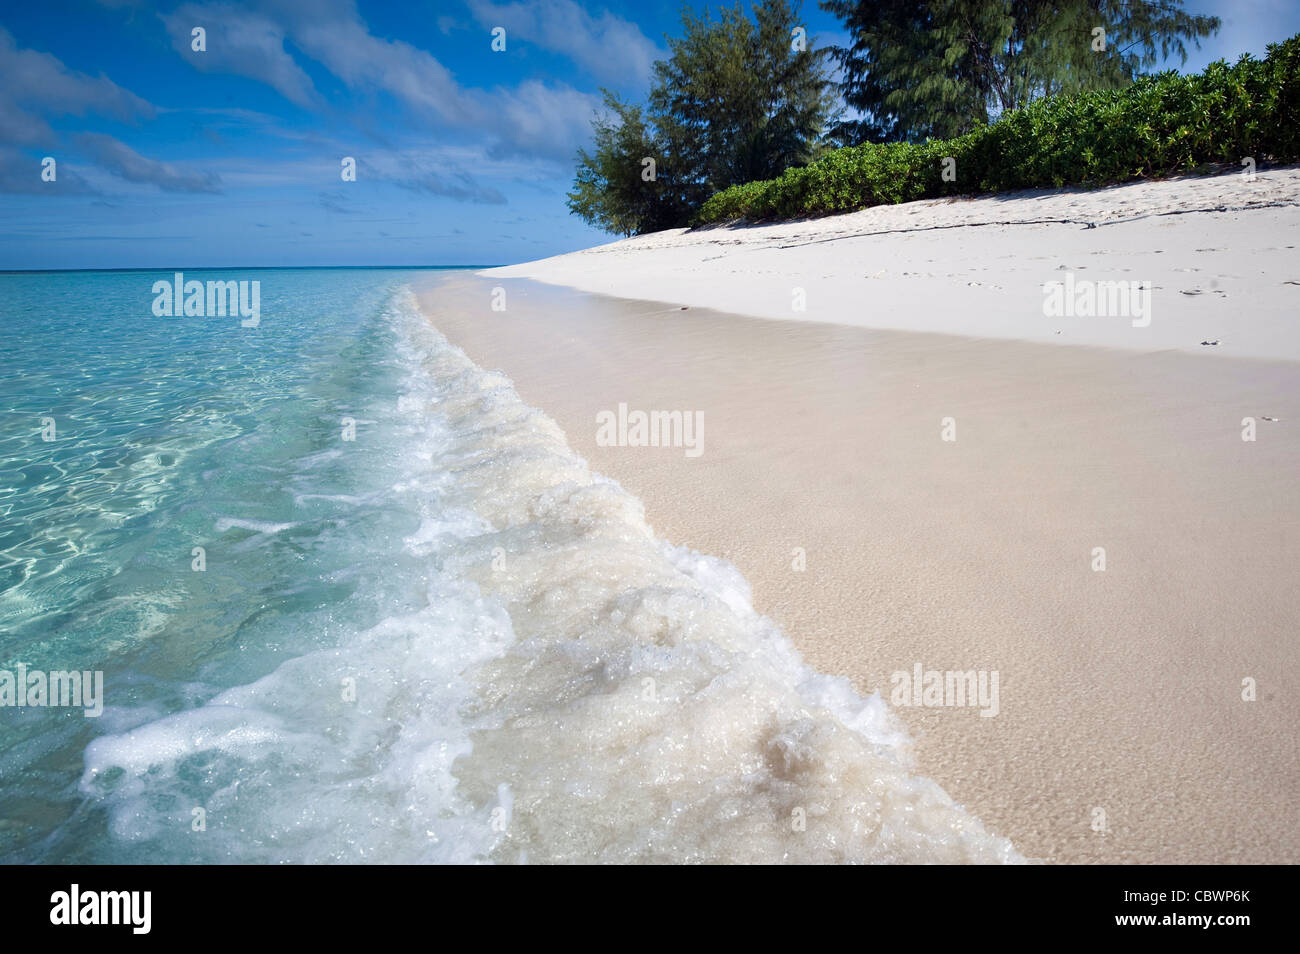 Denis private island, Seychelles - Stock Image